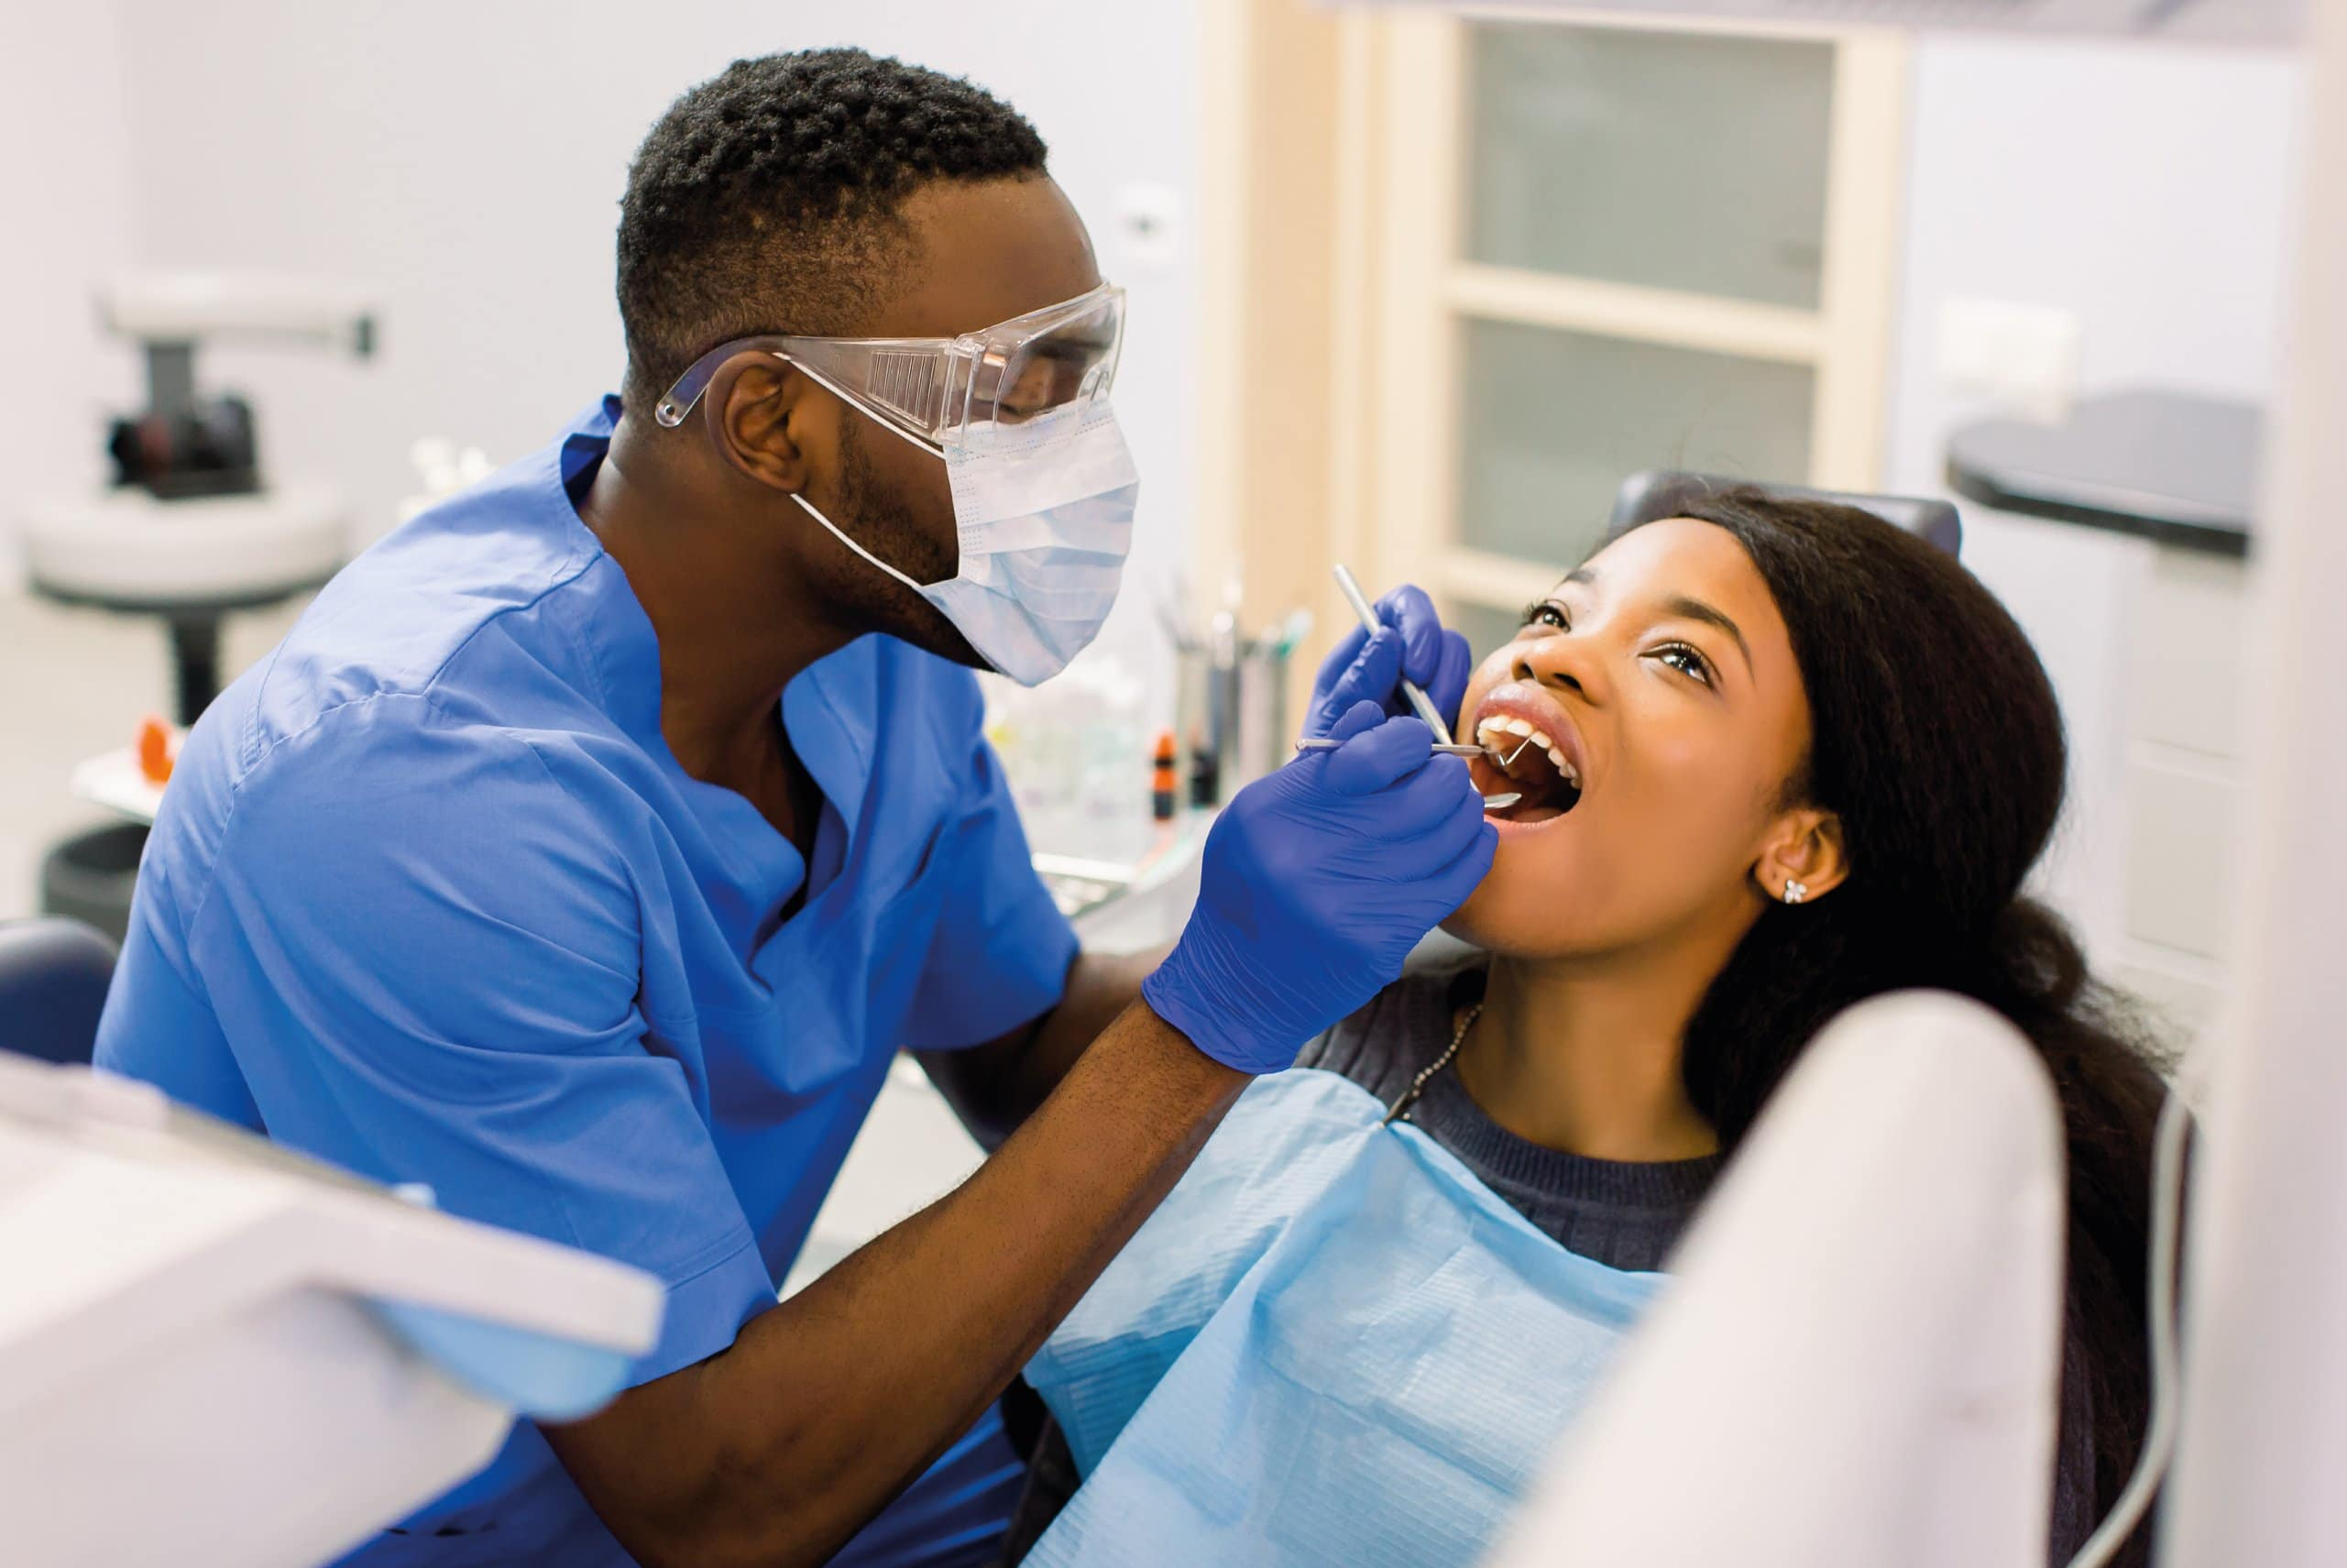 Crowns and fillings Guildford Dentist